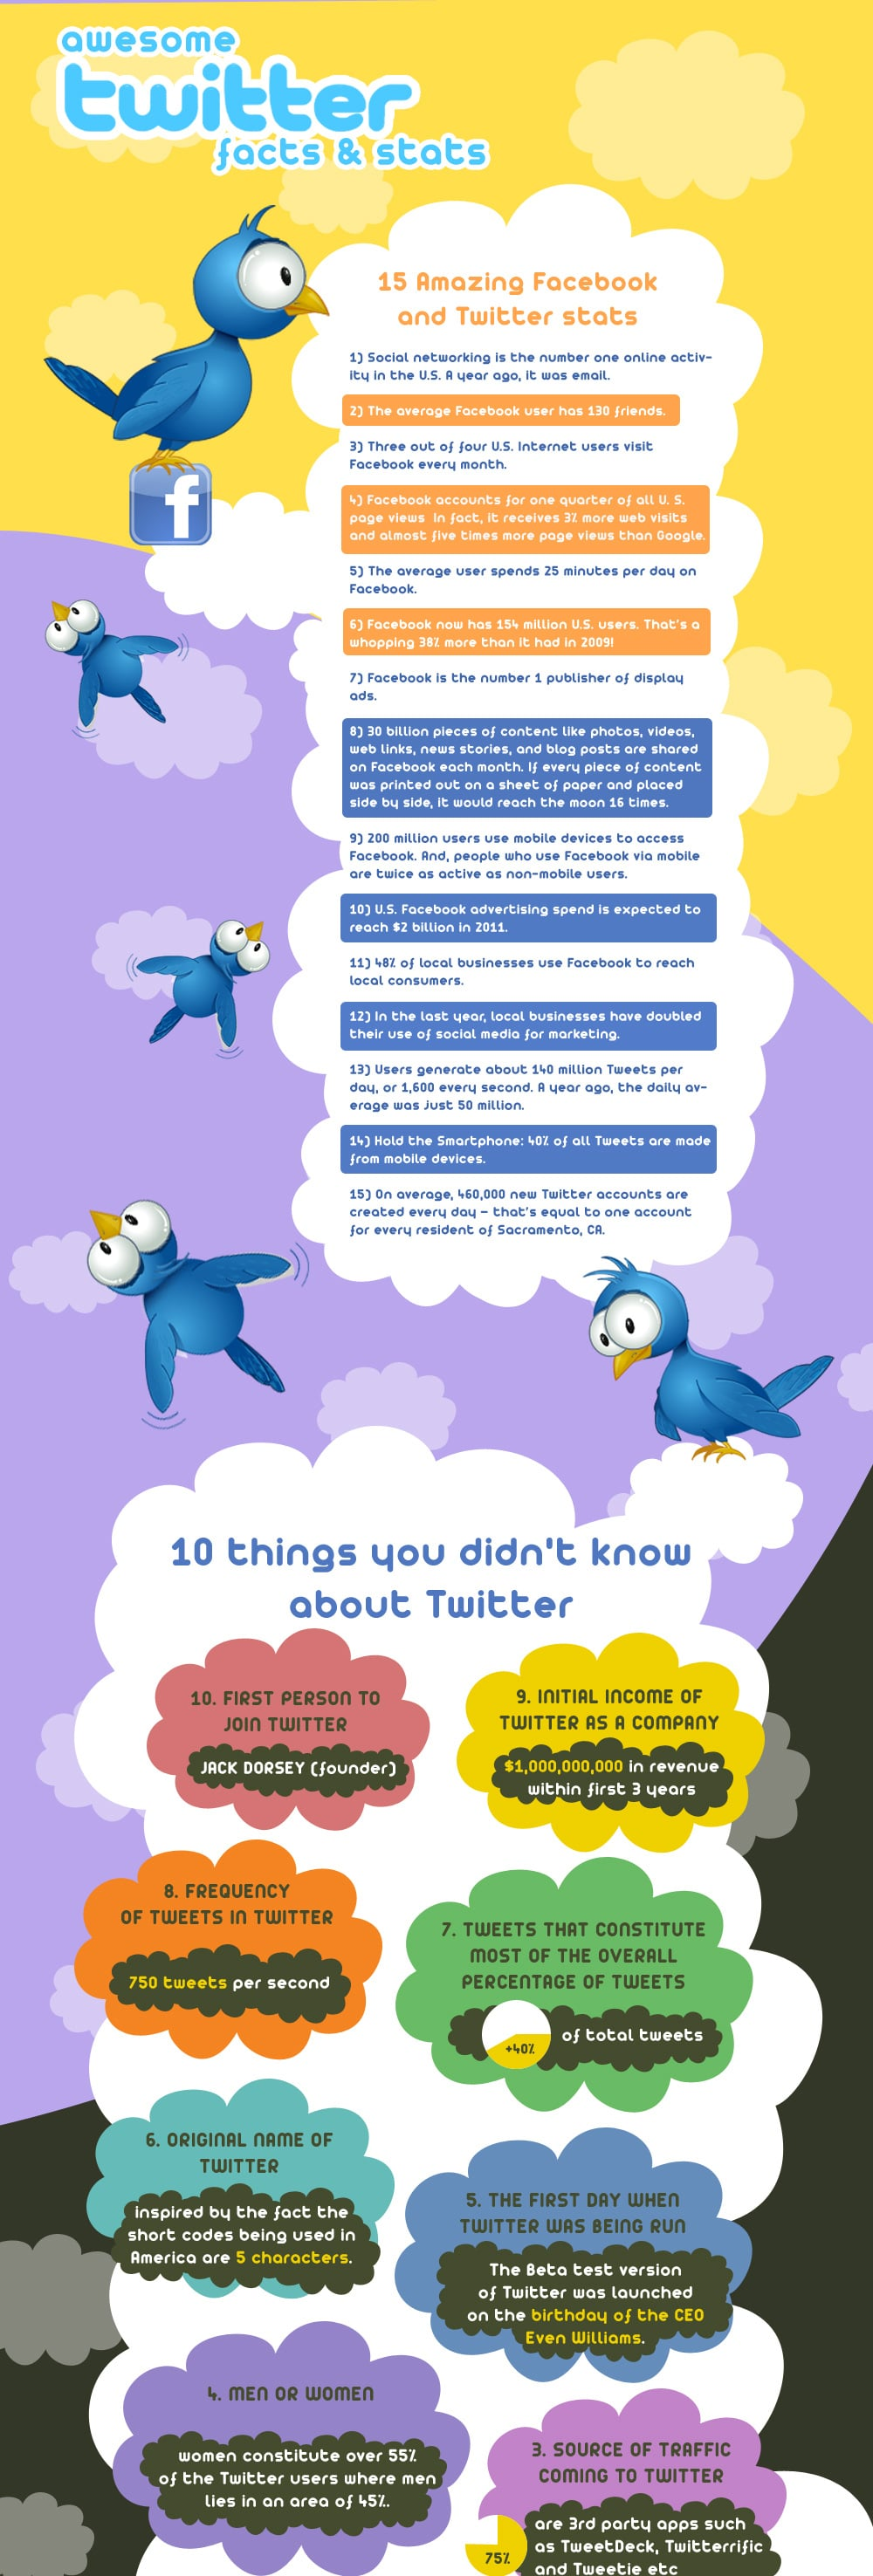 42 Fresh Facts About Twitter & Facebook [Infographic]